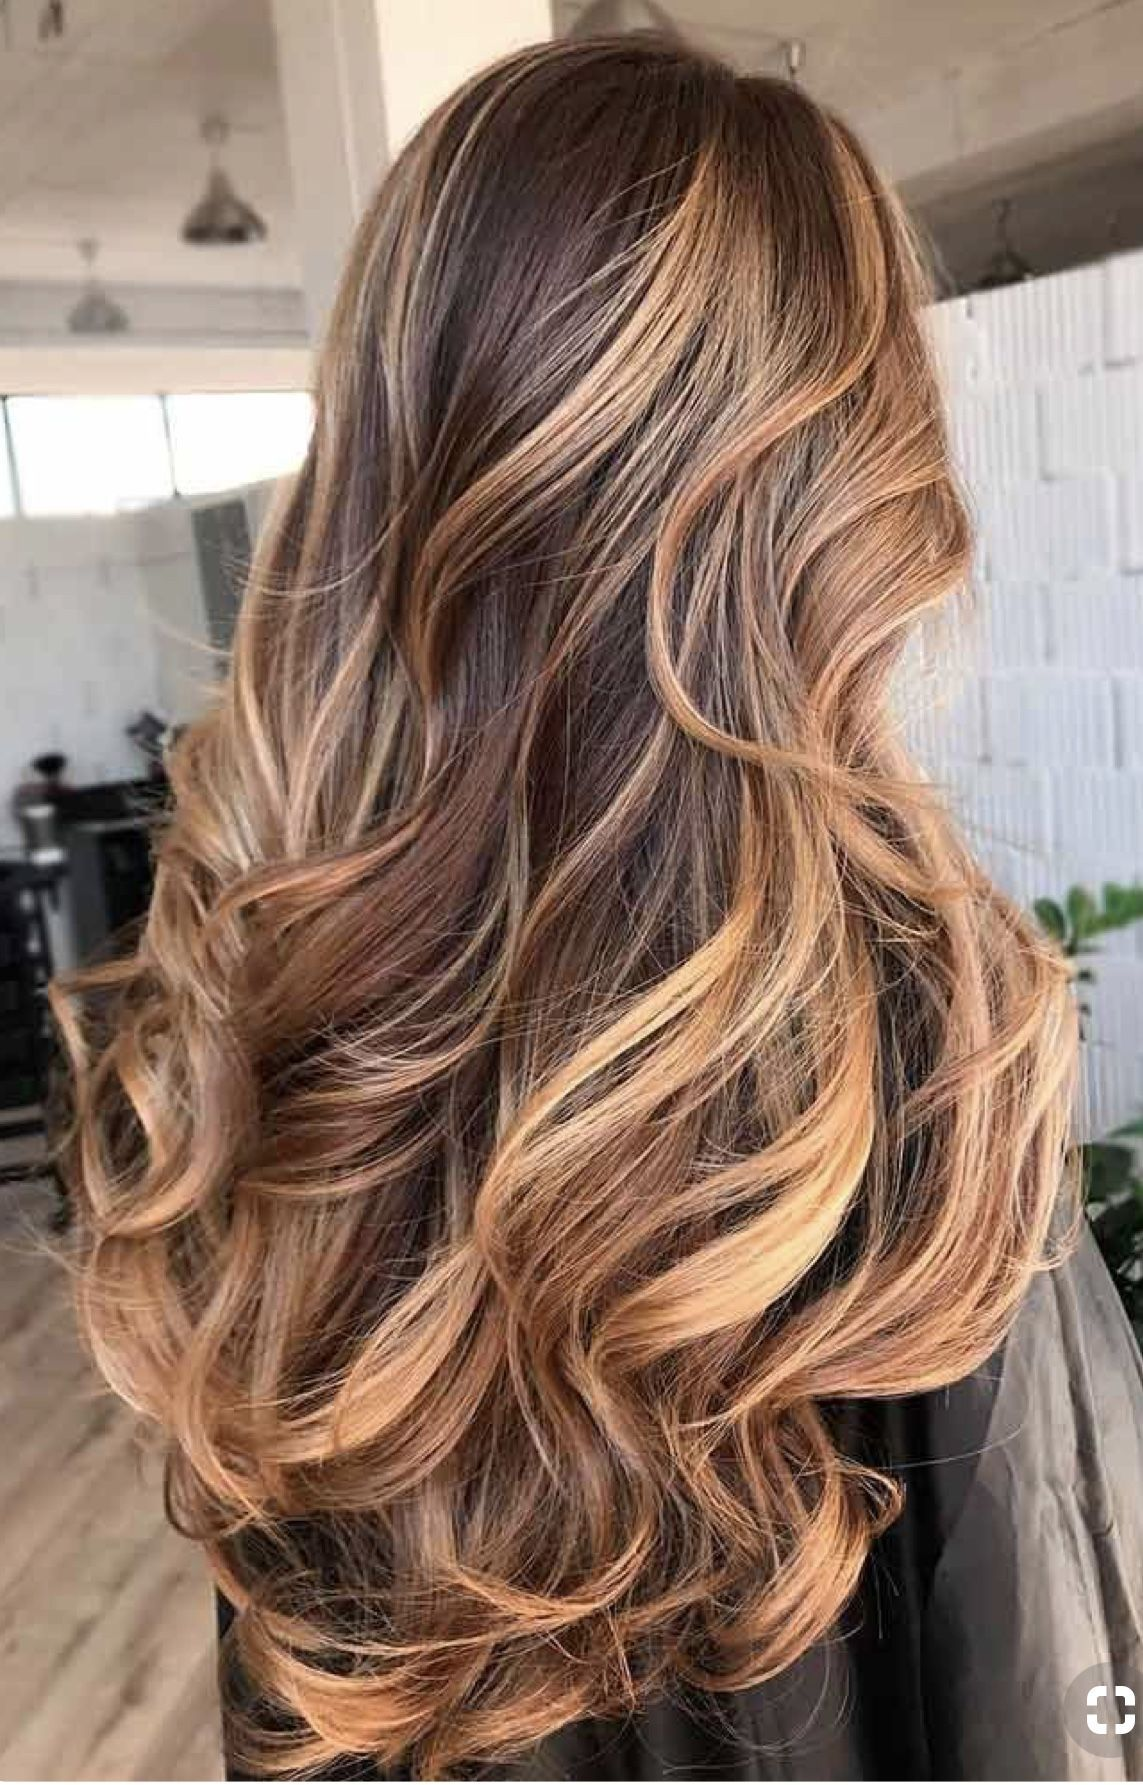 Caramel Balayage Haistyle 20 Sweet Caramel Balayage Hairstyles For Brunettes And Beyond Light Hair Hair Color Light Brown Honey Brown Hair